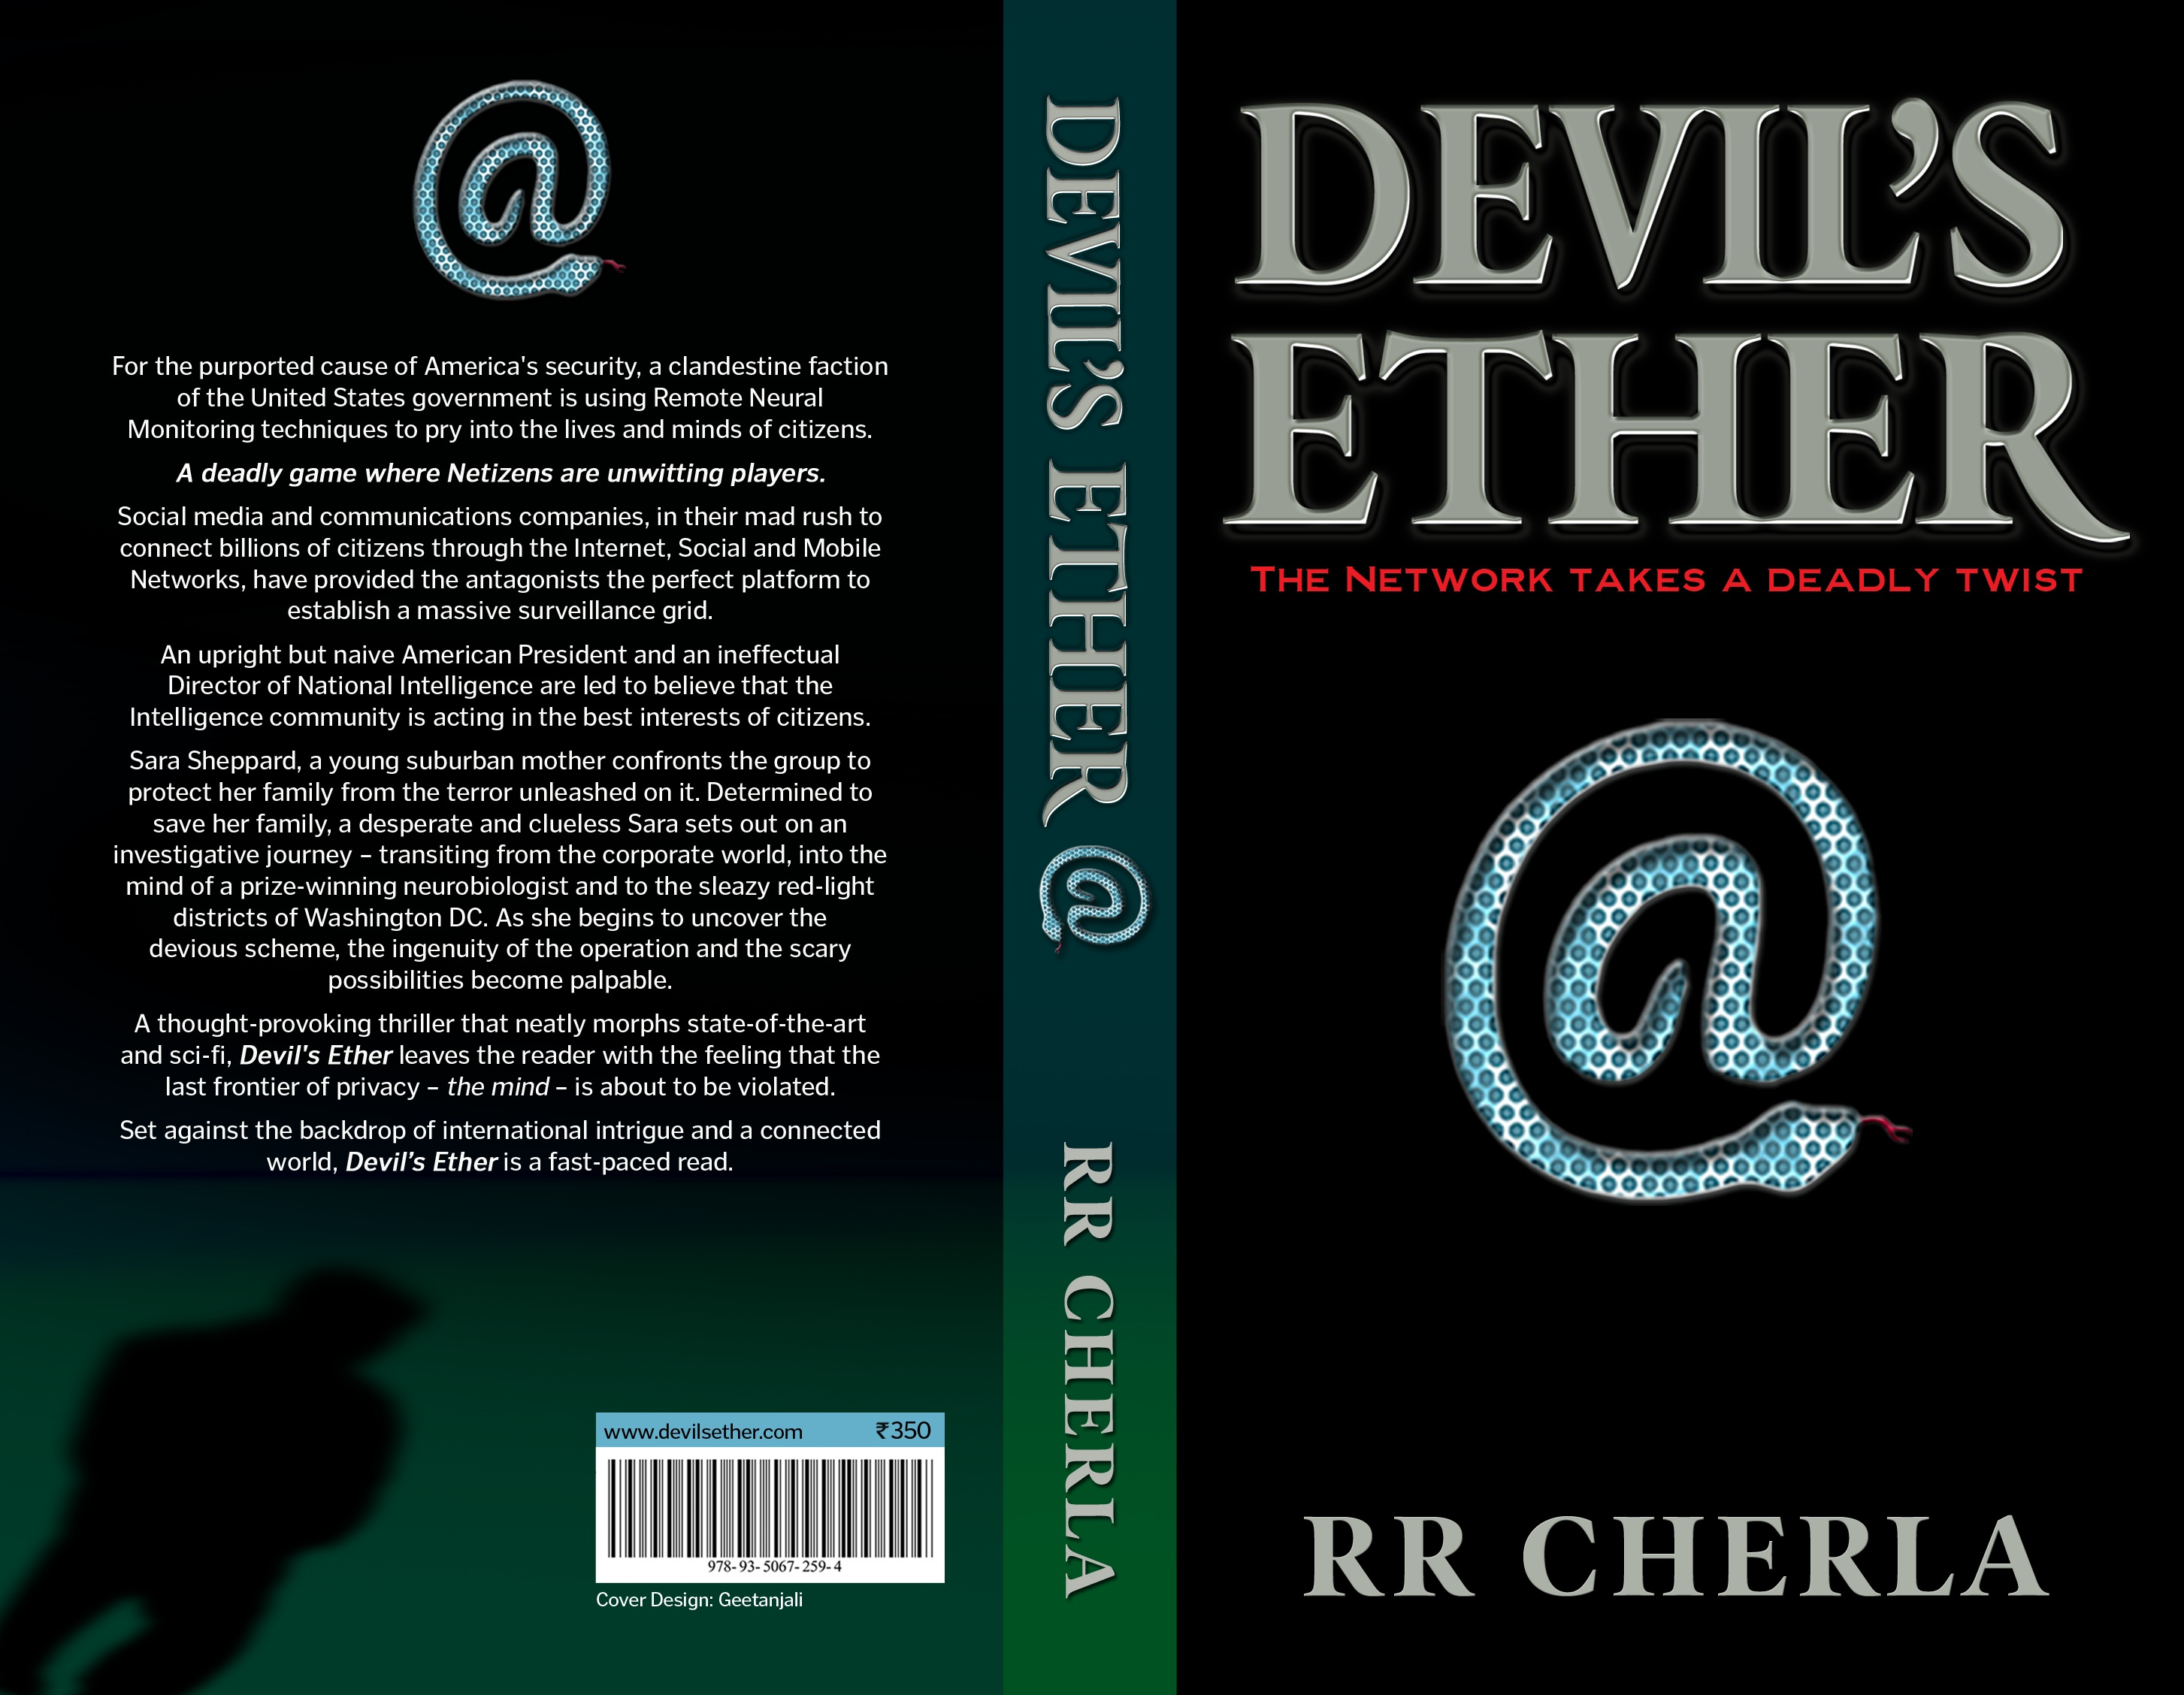 devil s ether an interview author r r cherla justbooks clc thank you cherla for this interview us congrats to you on very positive reviews on your book